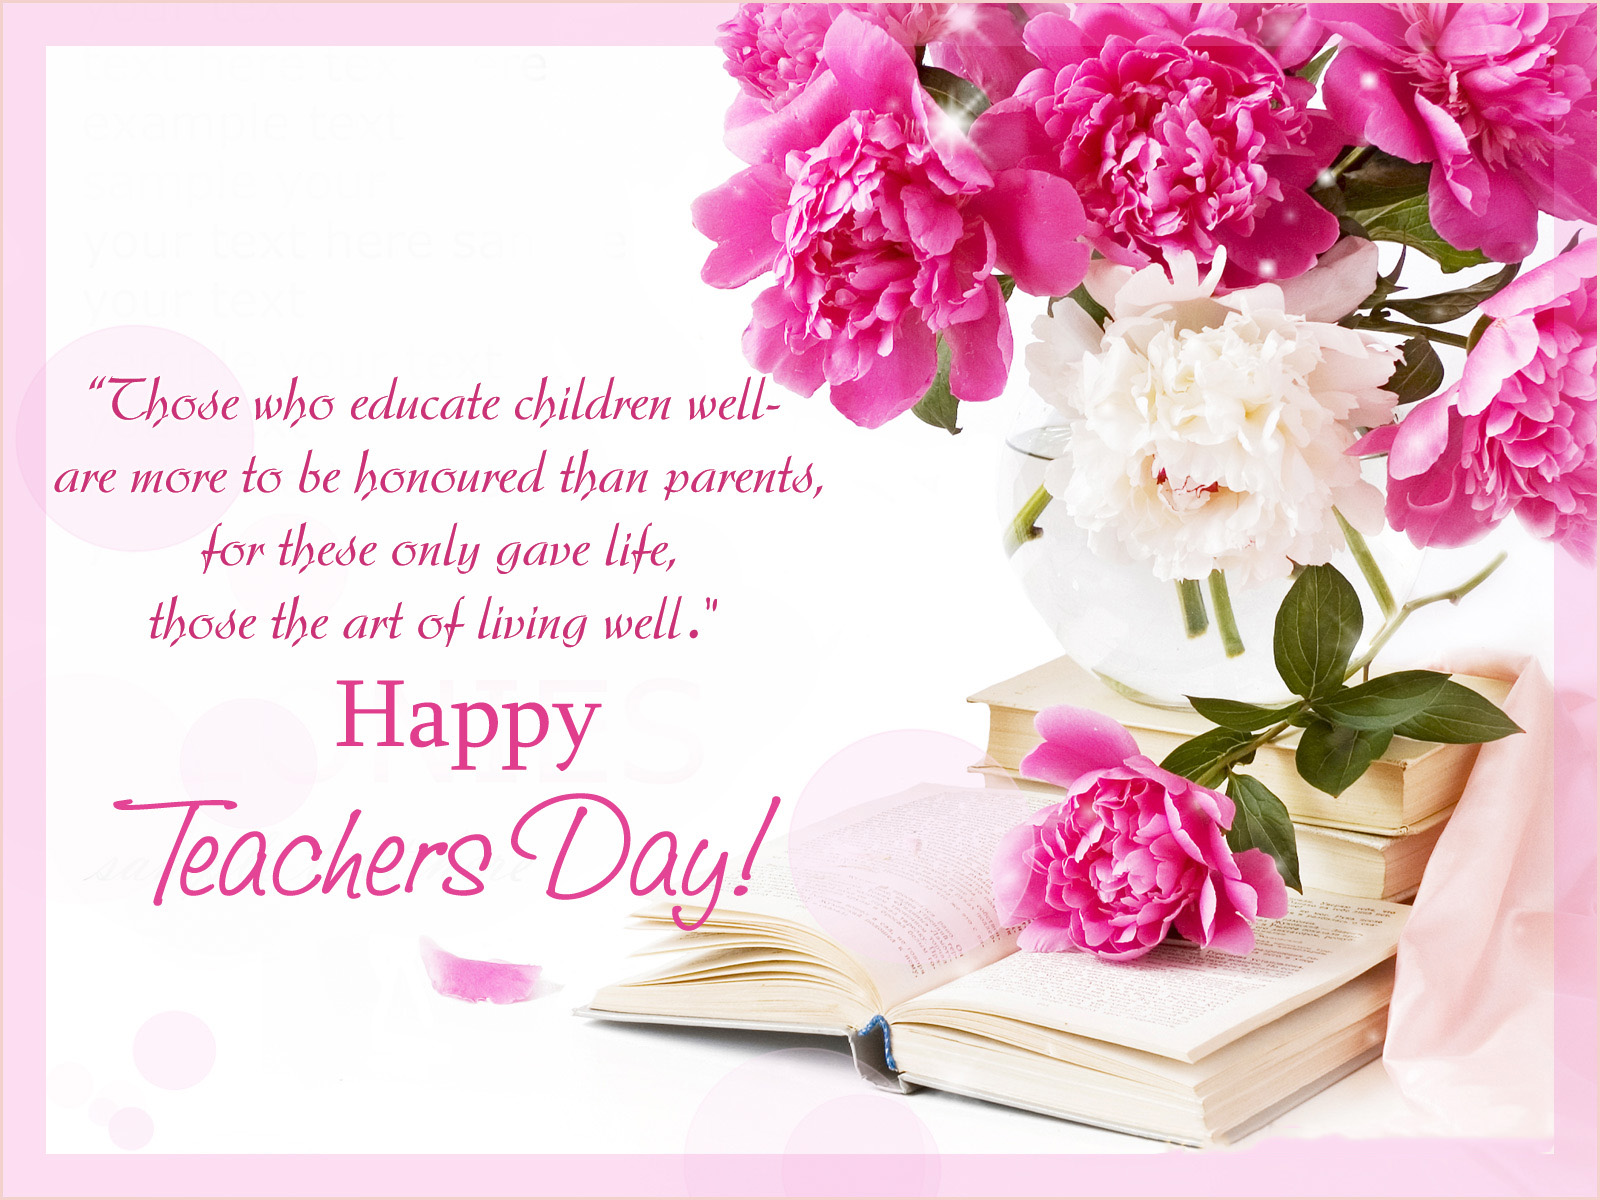 Happy Teachers Day Wallpapers Images Pictures Greetings